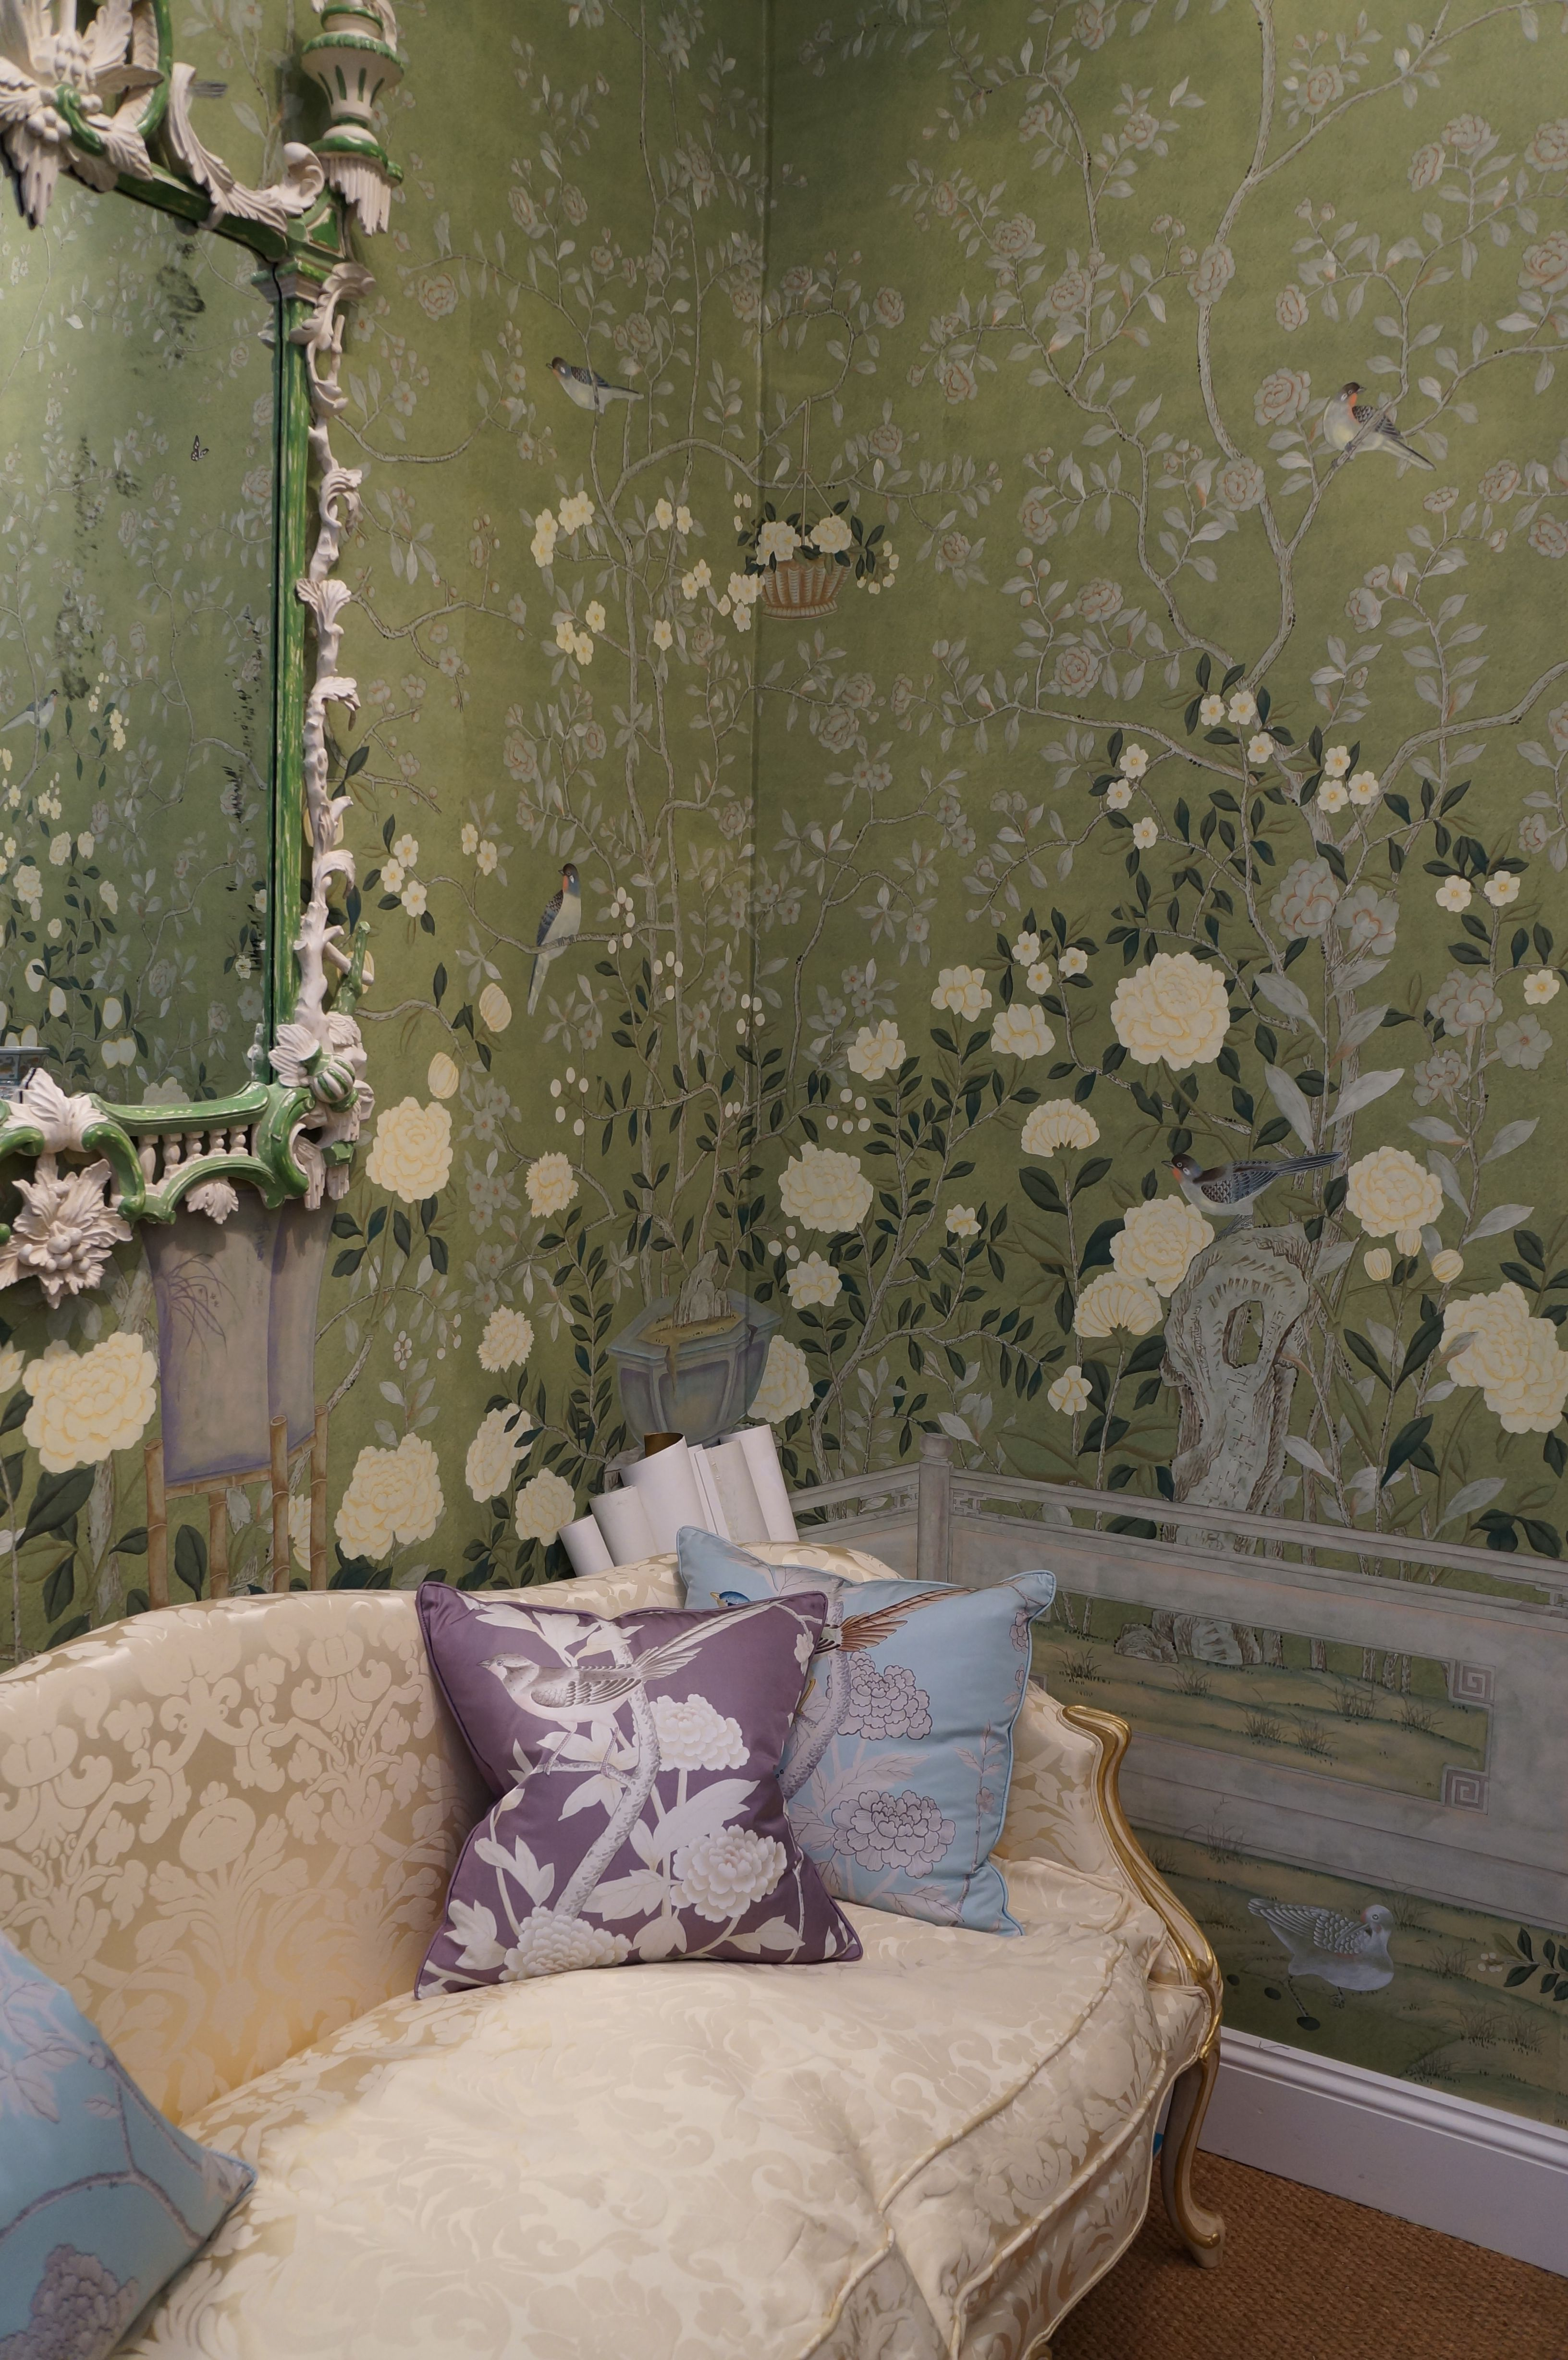 De Gournay, bespoke wallpaper company. Handpainted and